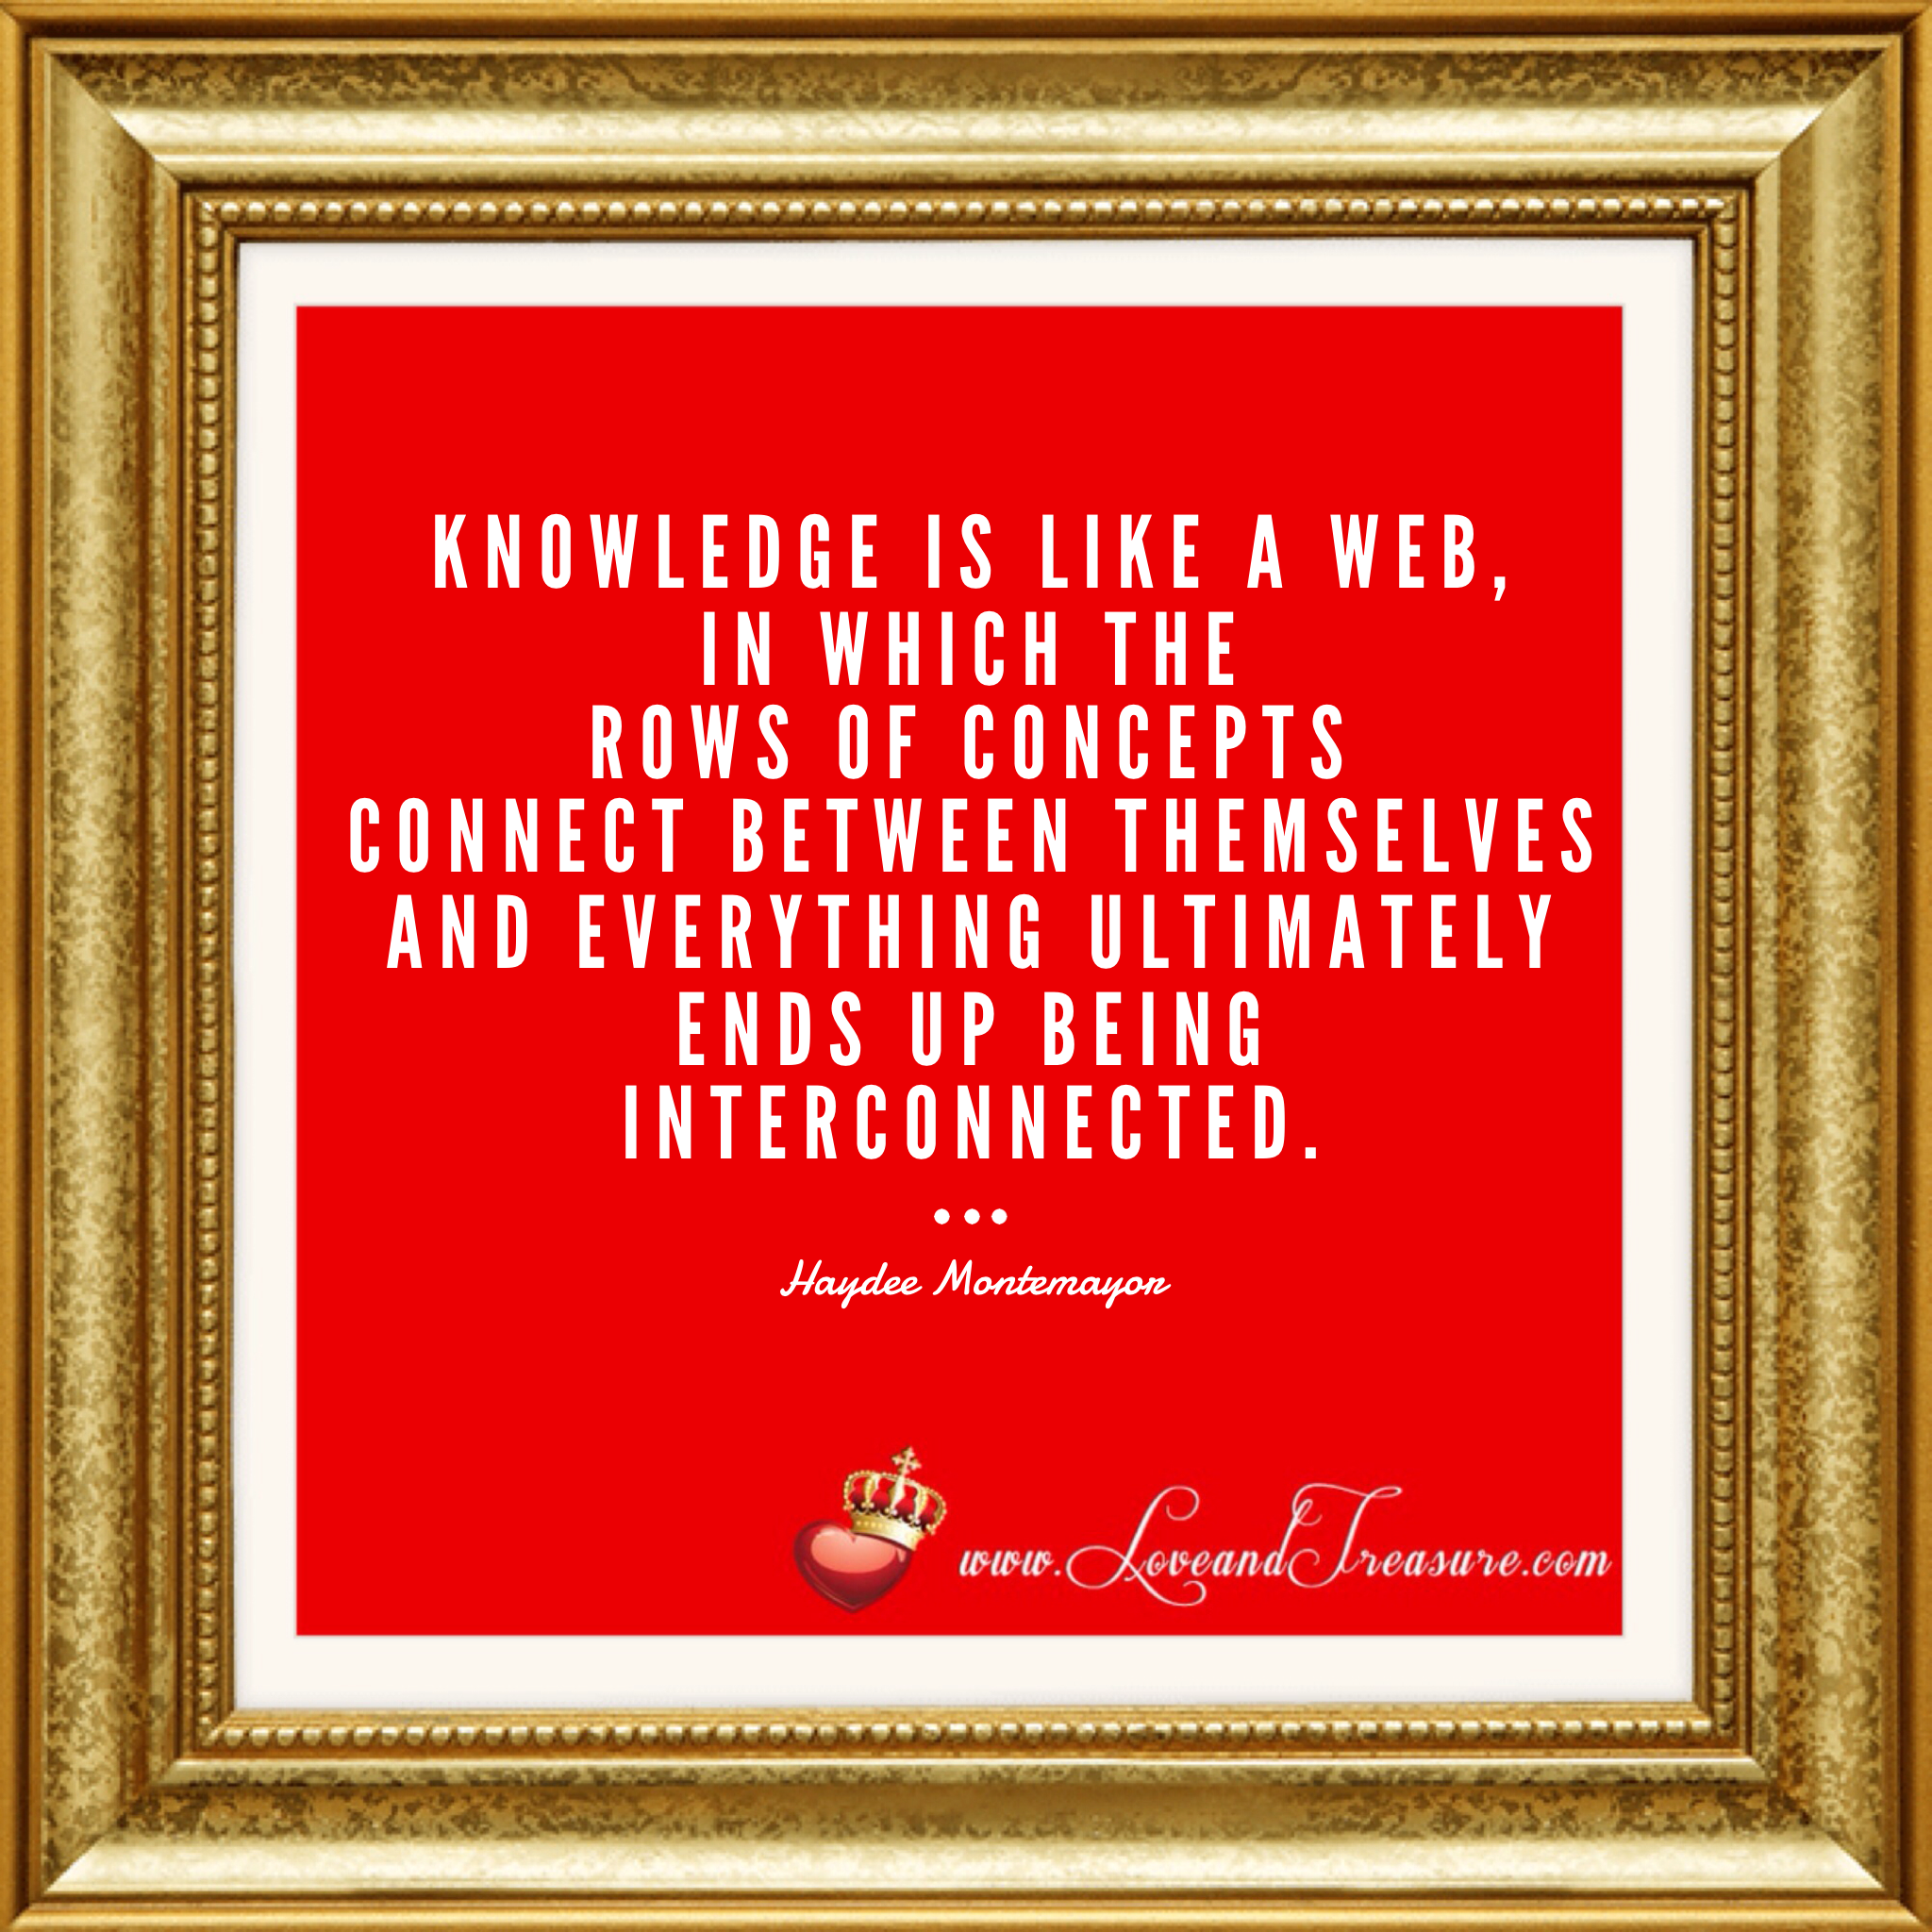 """Knowledge is like a web, in which the rows of concepts connect between themselves and everything ultimately ends up being interconnected."" - Haydee Montemayor from Love and Treasure www.loveandtreasure.com"